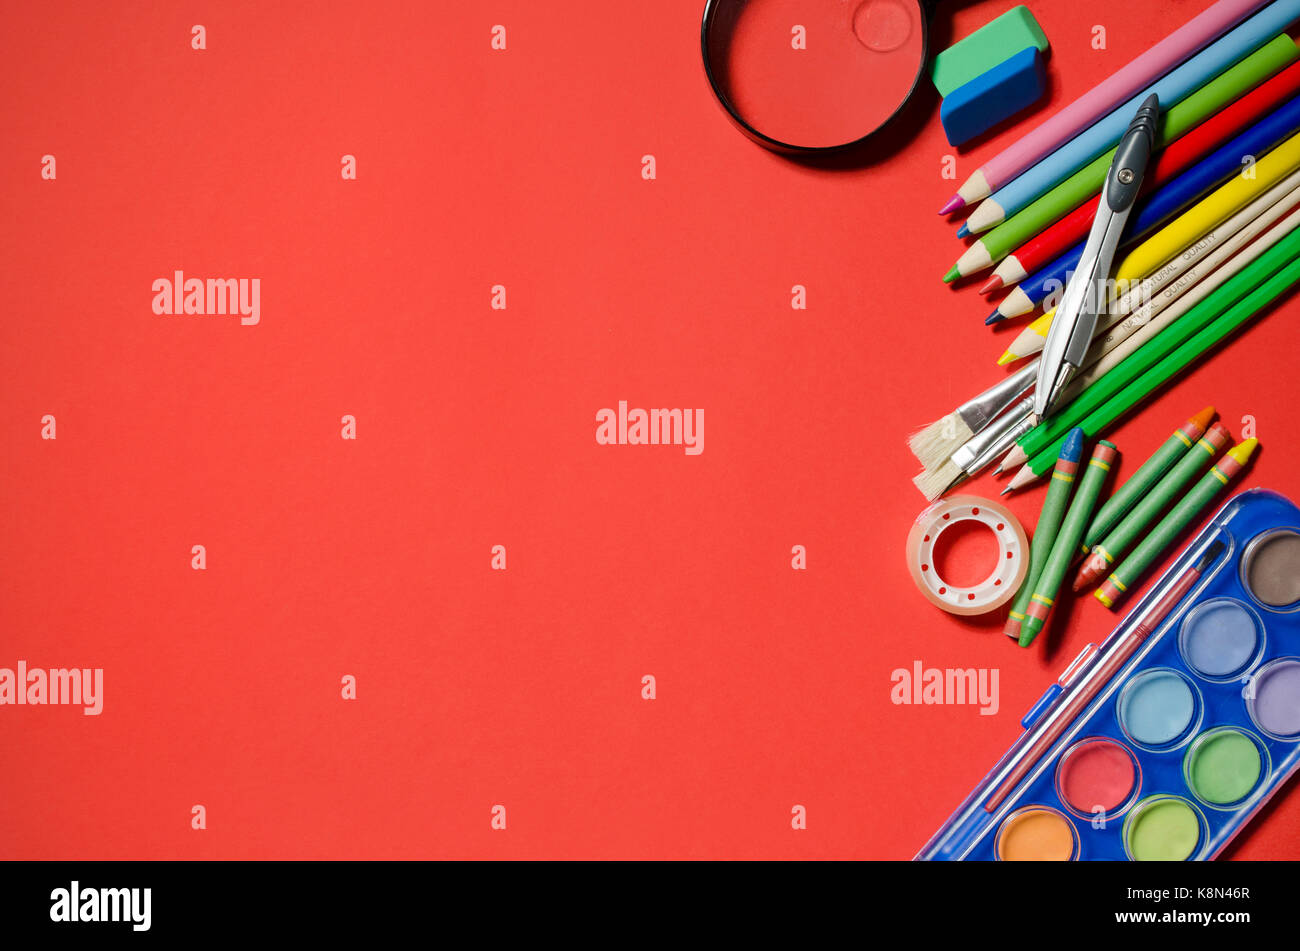 School and office stationery, red background, copyspace. stationery office desk top view table school student concept - Stock Image